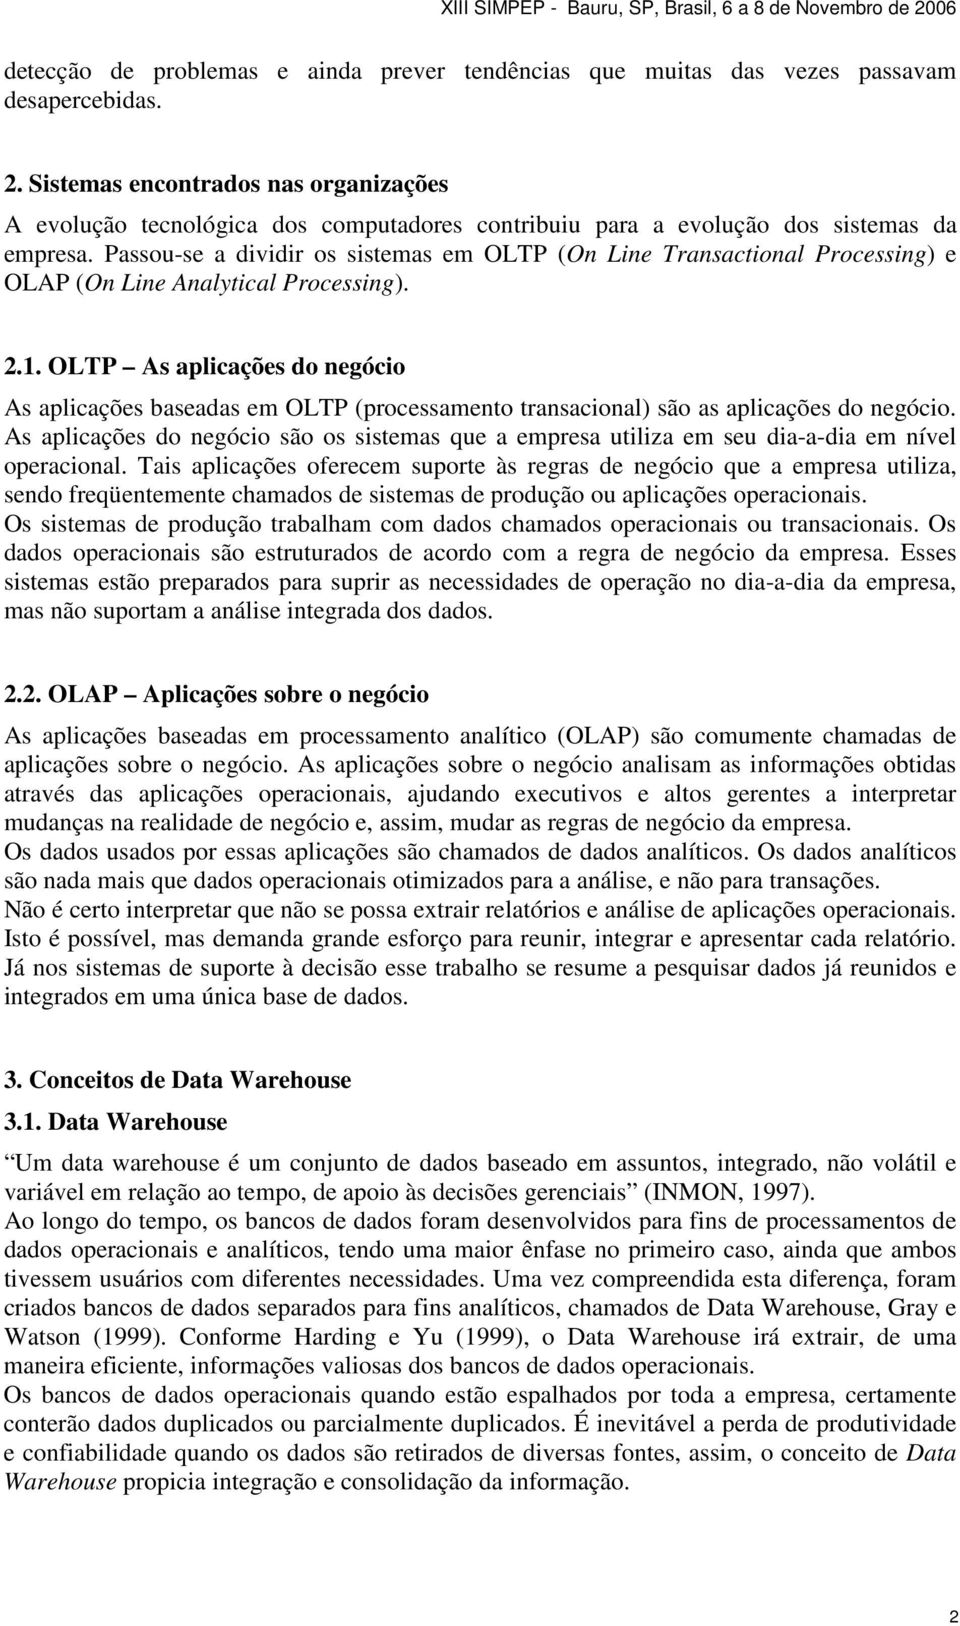 Passou-se a dividir os sistemas em OLTP (On Line Transactional Processing) e OLAP (On Line Analytical Processing). 2.1.